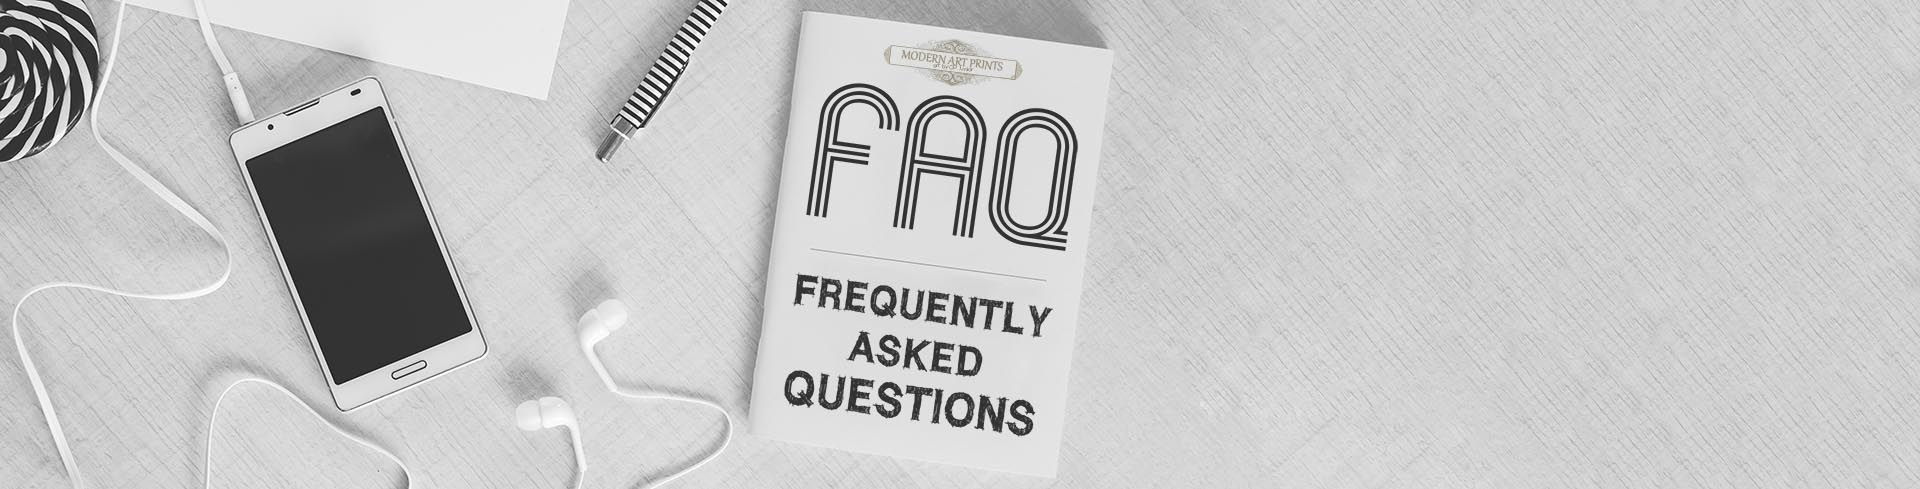 frequently asked questions header